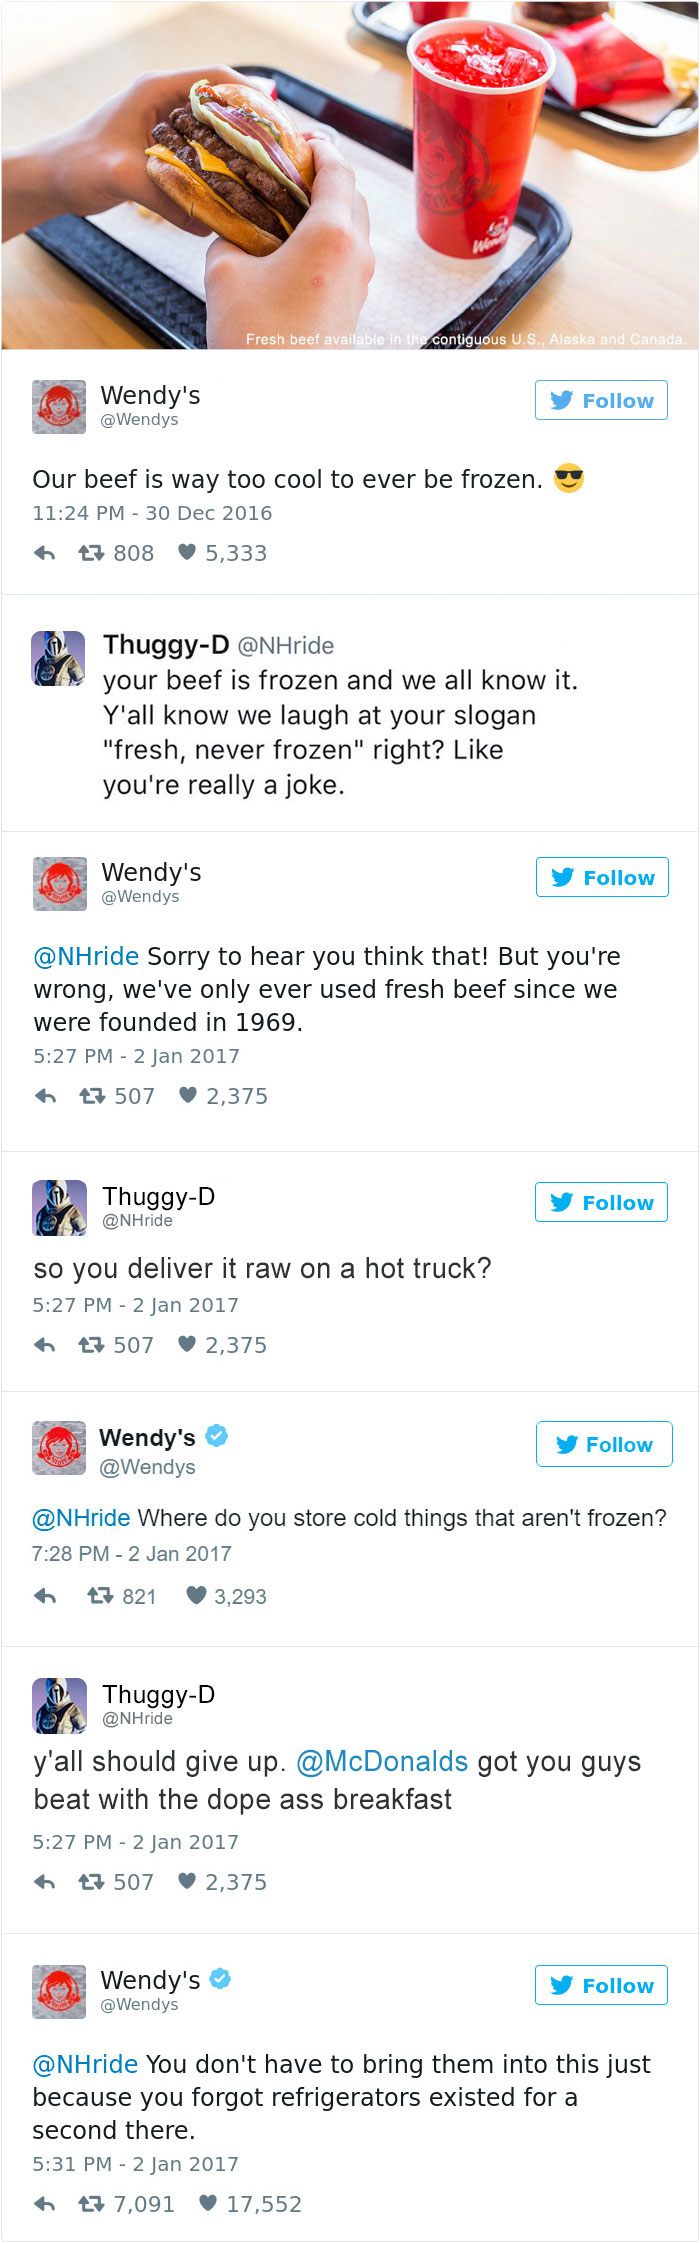 Guy Deletes His Twitter Account After Wendy's Roast